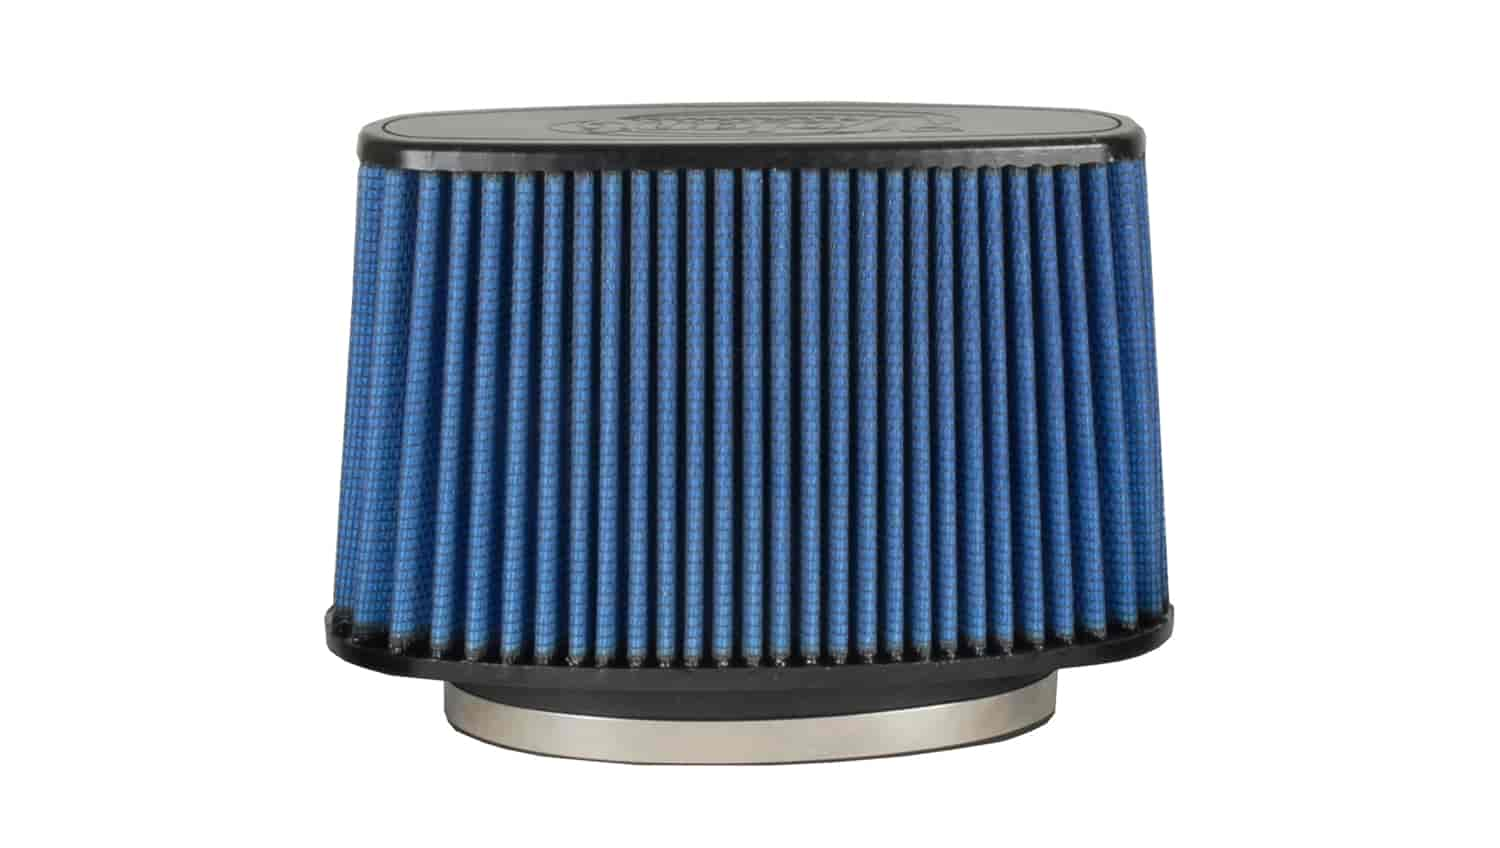 """Volant Oval Air Filter 6/"""" Flange//8.25/""""x5.5/"""" Base//6.5/""""x9.5/"""" Top//6/"""" High"""